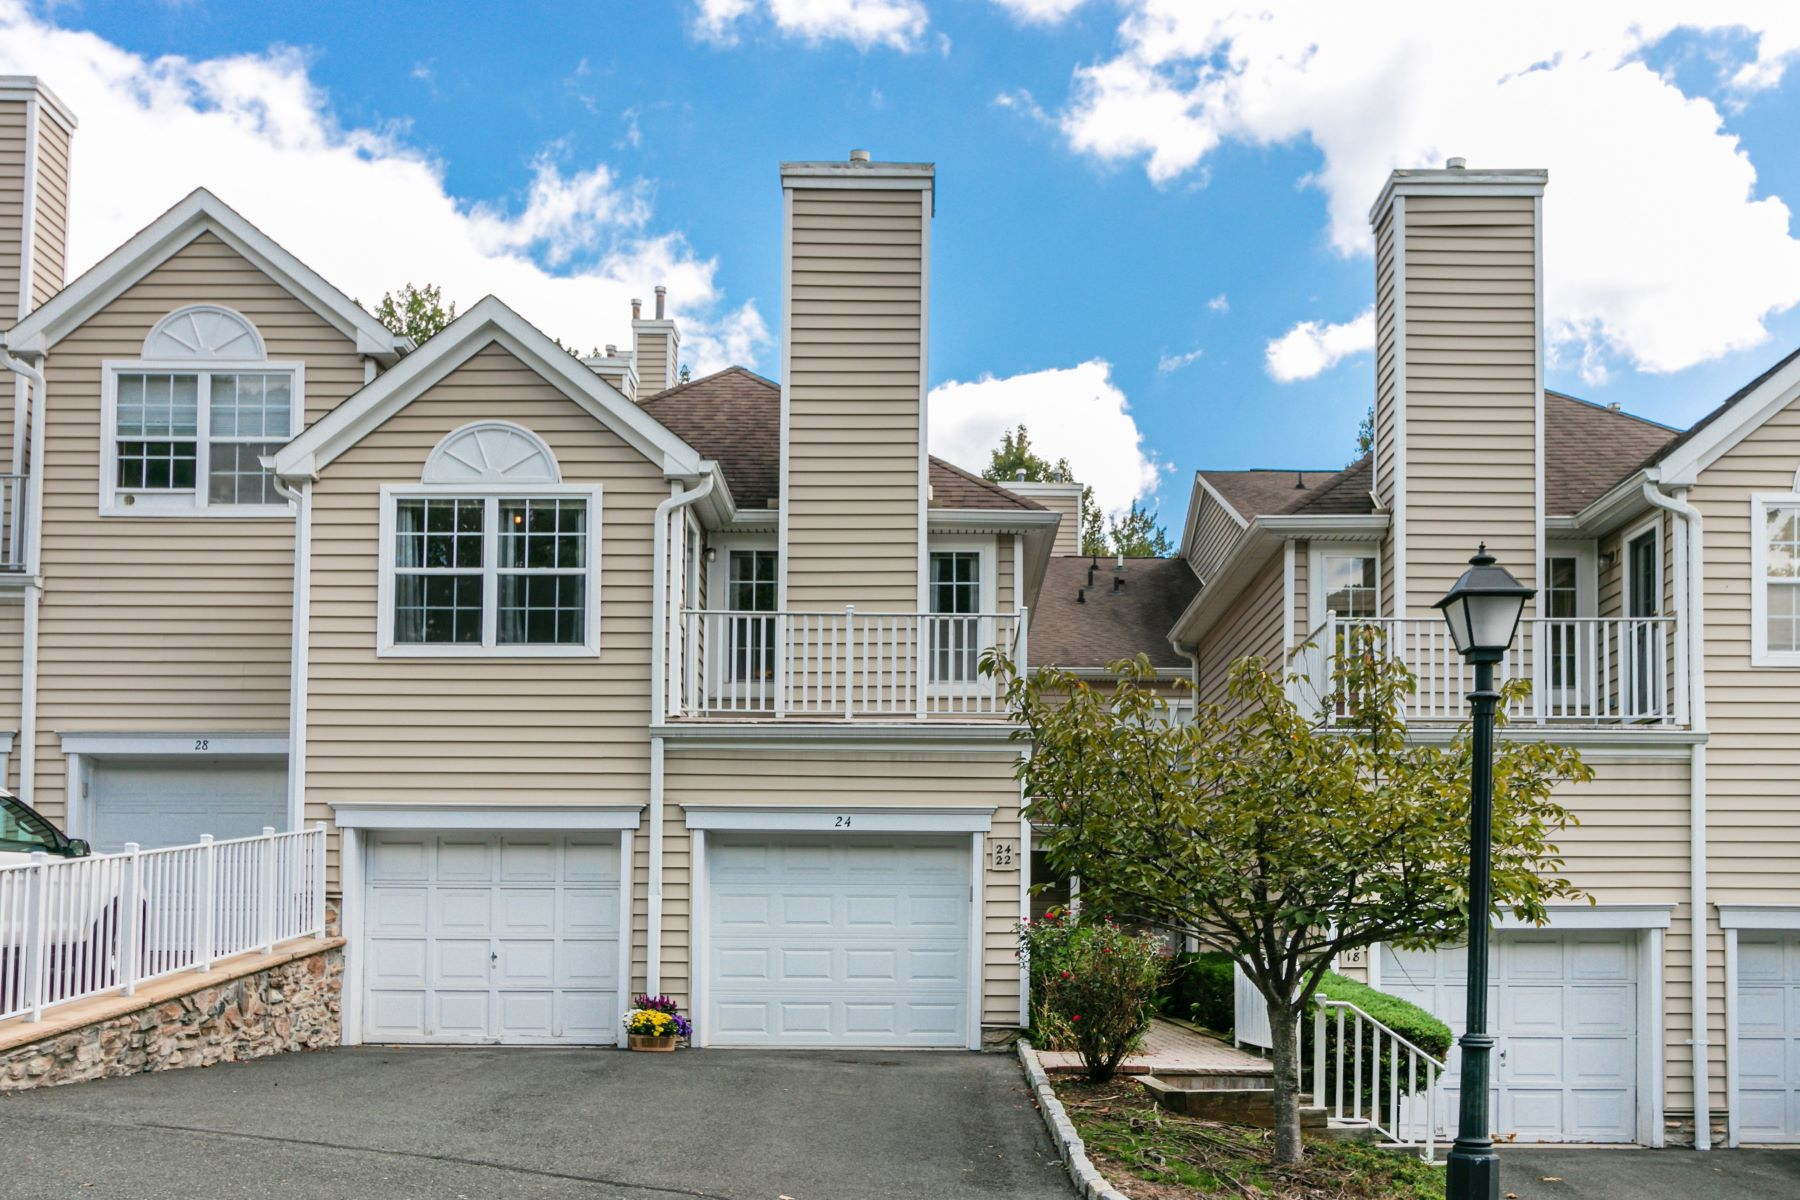 townhouses for Sale at Immaculate Villas on the Park Townhome 24 Springholm Drive Berkeley Heights, New Jersey 07922 United States